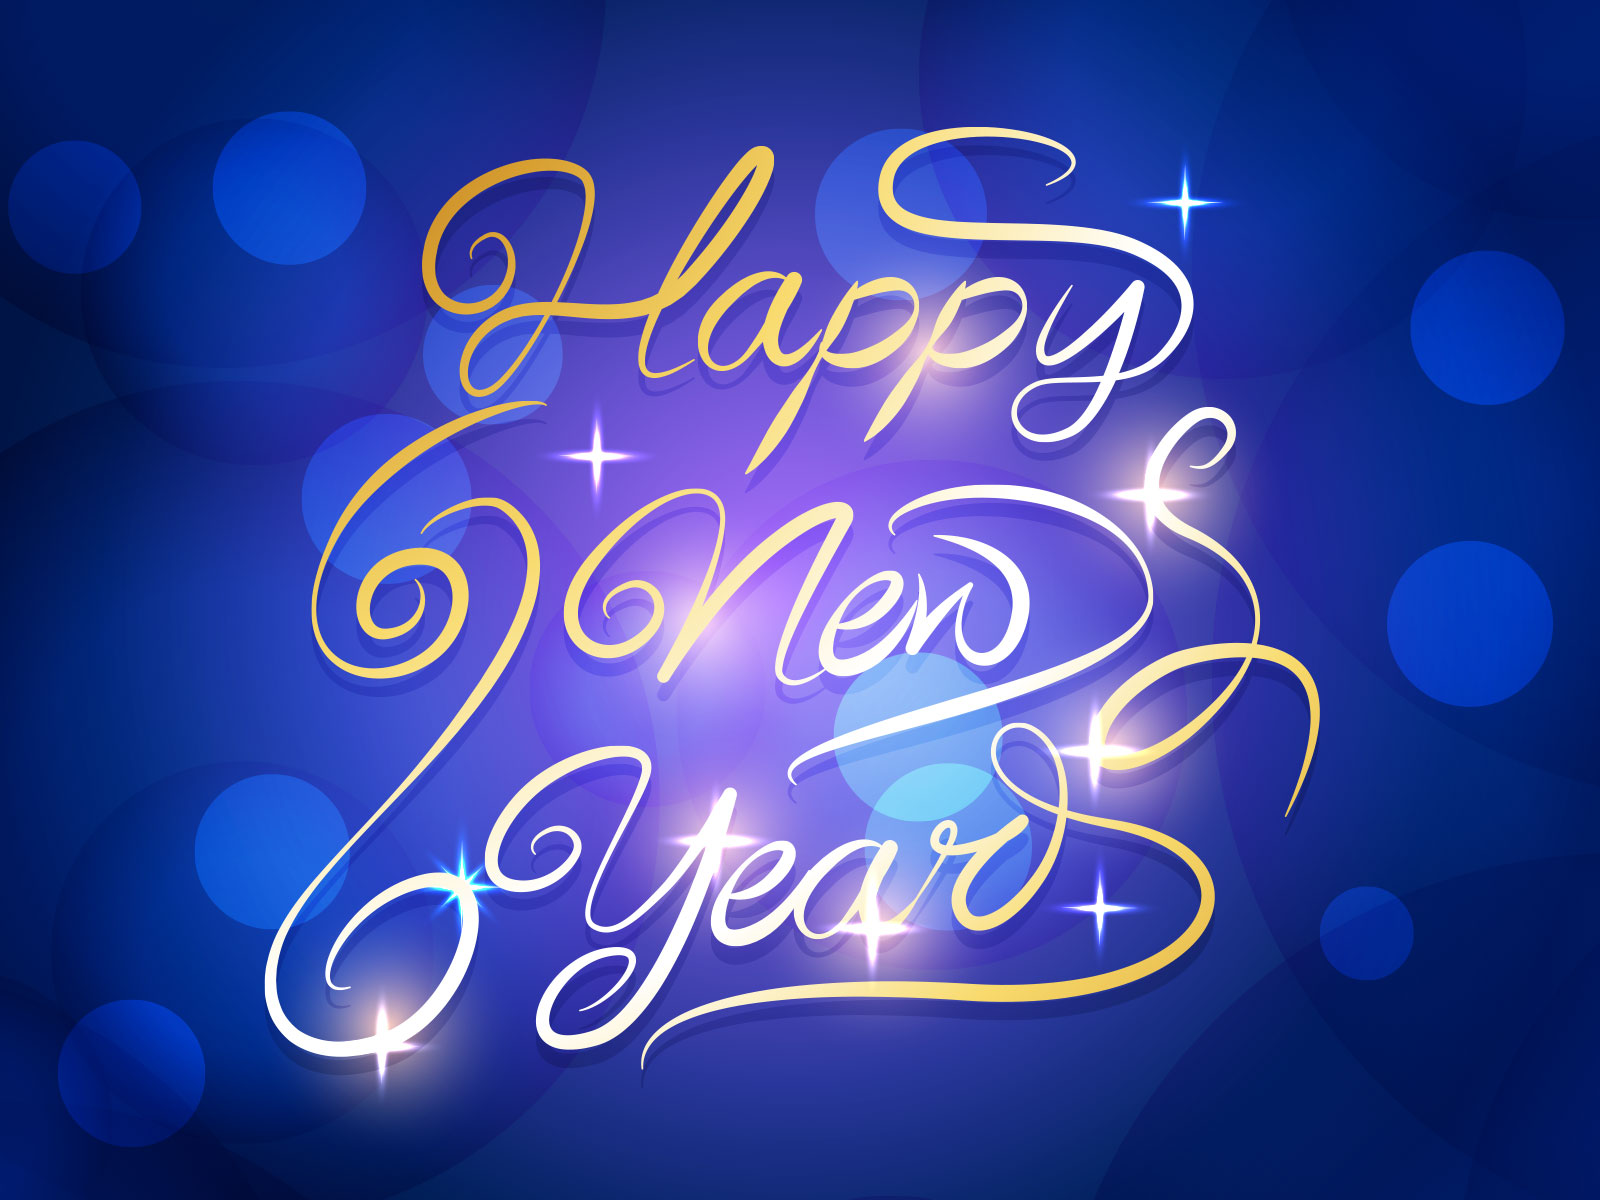 Welcome 2015 HD Wallpaper Happy New Year 2015 16Play Apps For PC 1600x1200